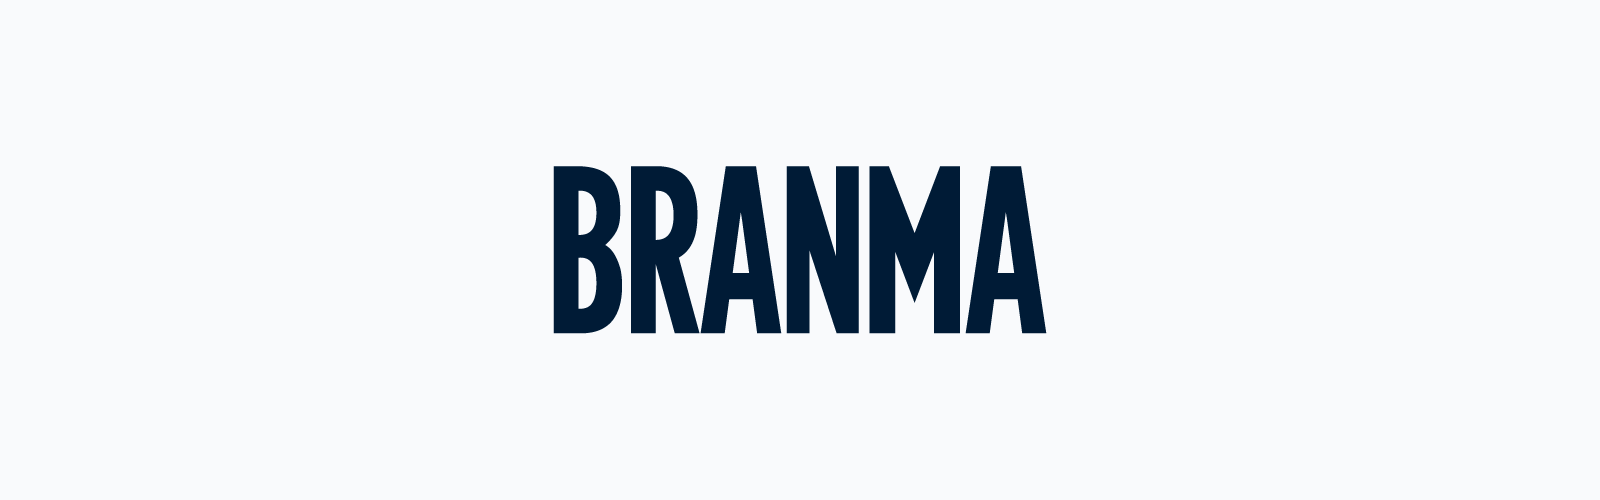 BRANMA | Your everyday essentials